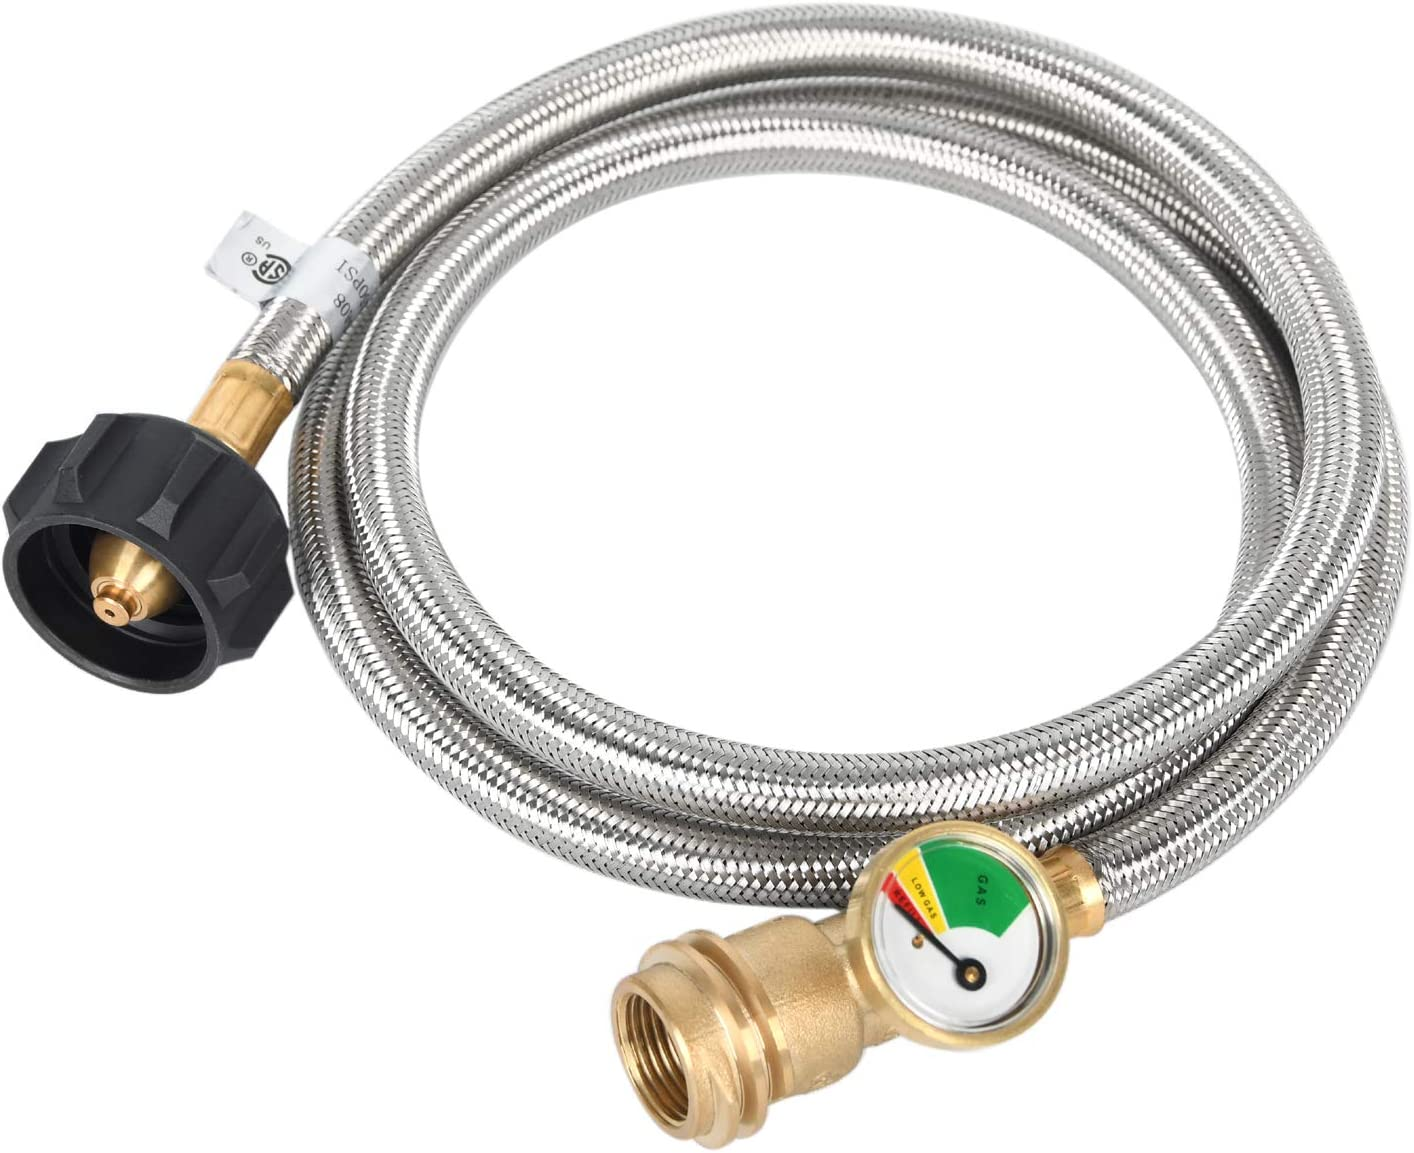 GGC 4 Ft Propane Gauge with Hose Adapter 1 lb to 20 lb Converter Replacement for QCC1 / Type1 Tank Connects 1 LB Bulk Portable Appliance (Stainless Steel Braided)